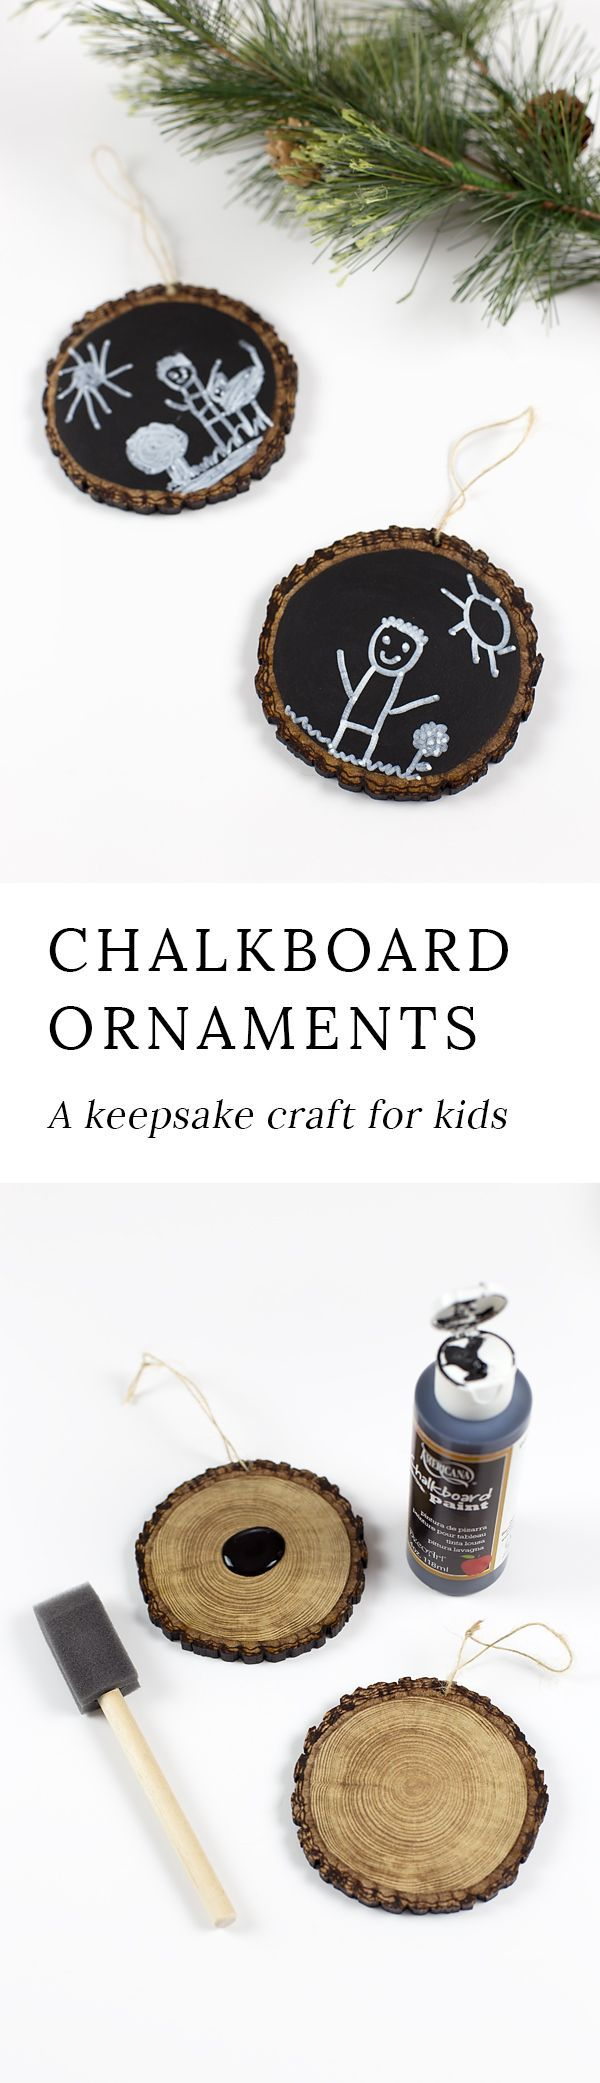 Easy Keepsake Chalkboard Ornaments, guaranteed to make your heart swoon every Christmas. An Christmas craft for kids to make. #christmas #ornaments via @https://www.pinterest.com/fireflymudpie/